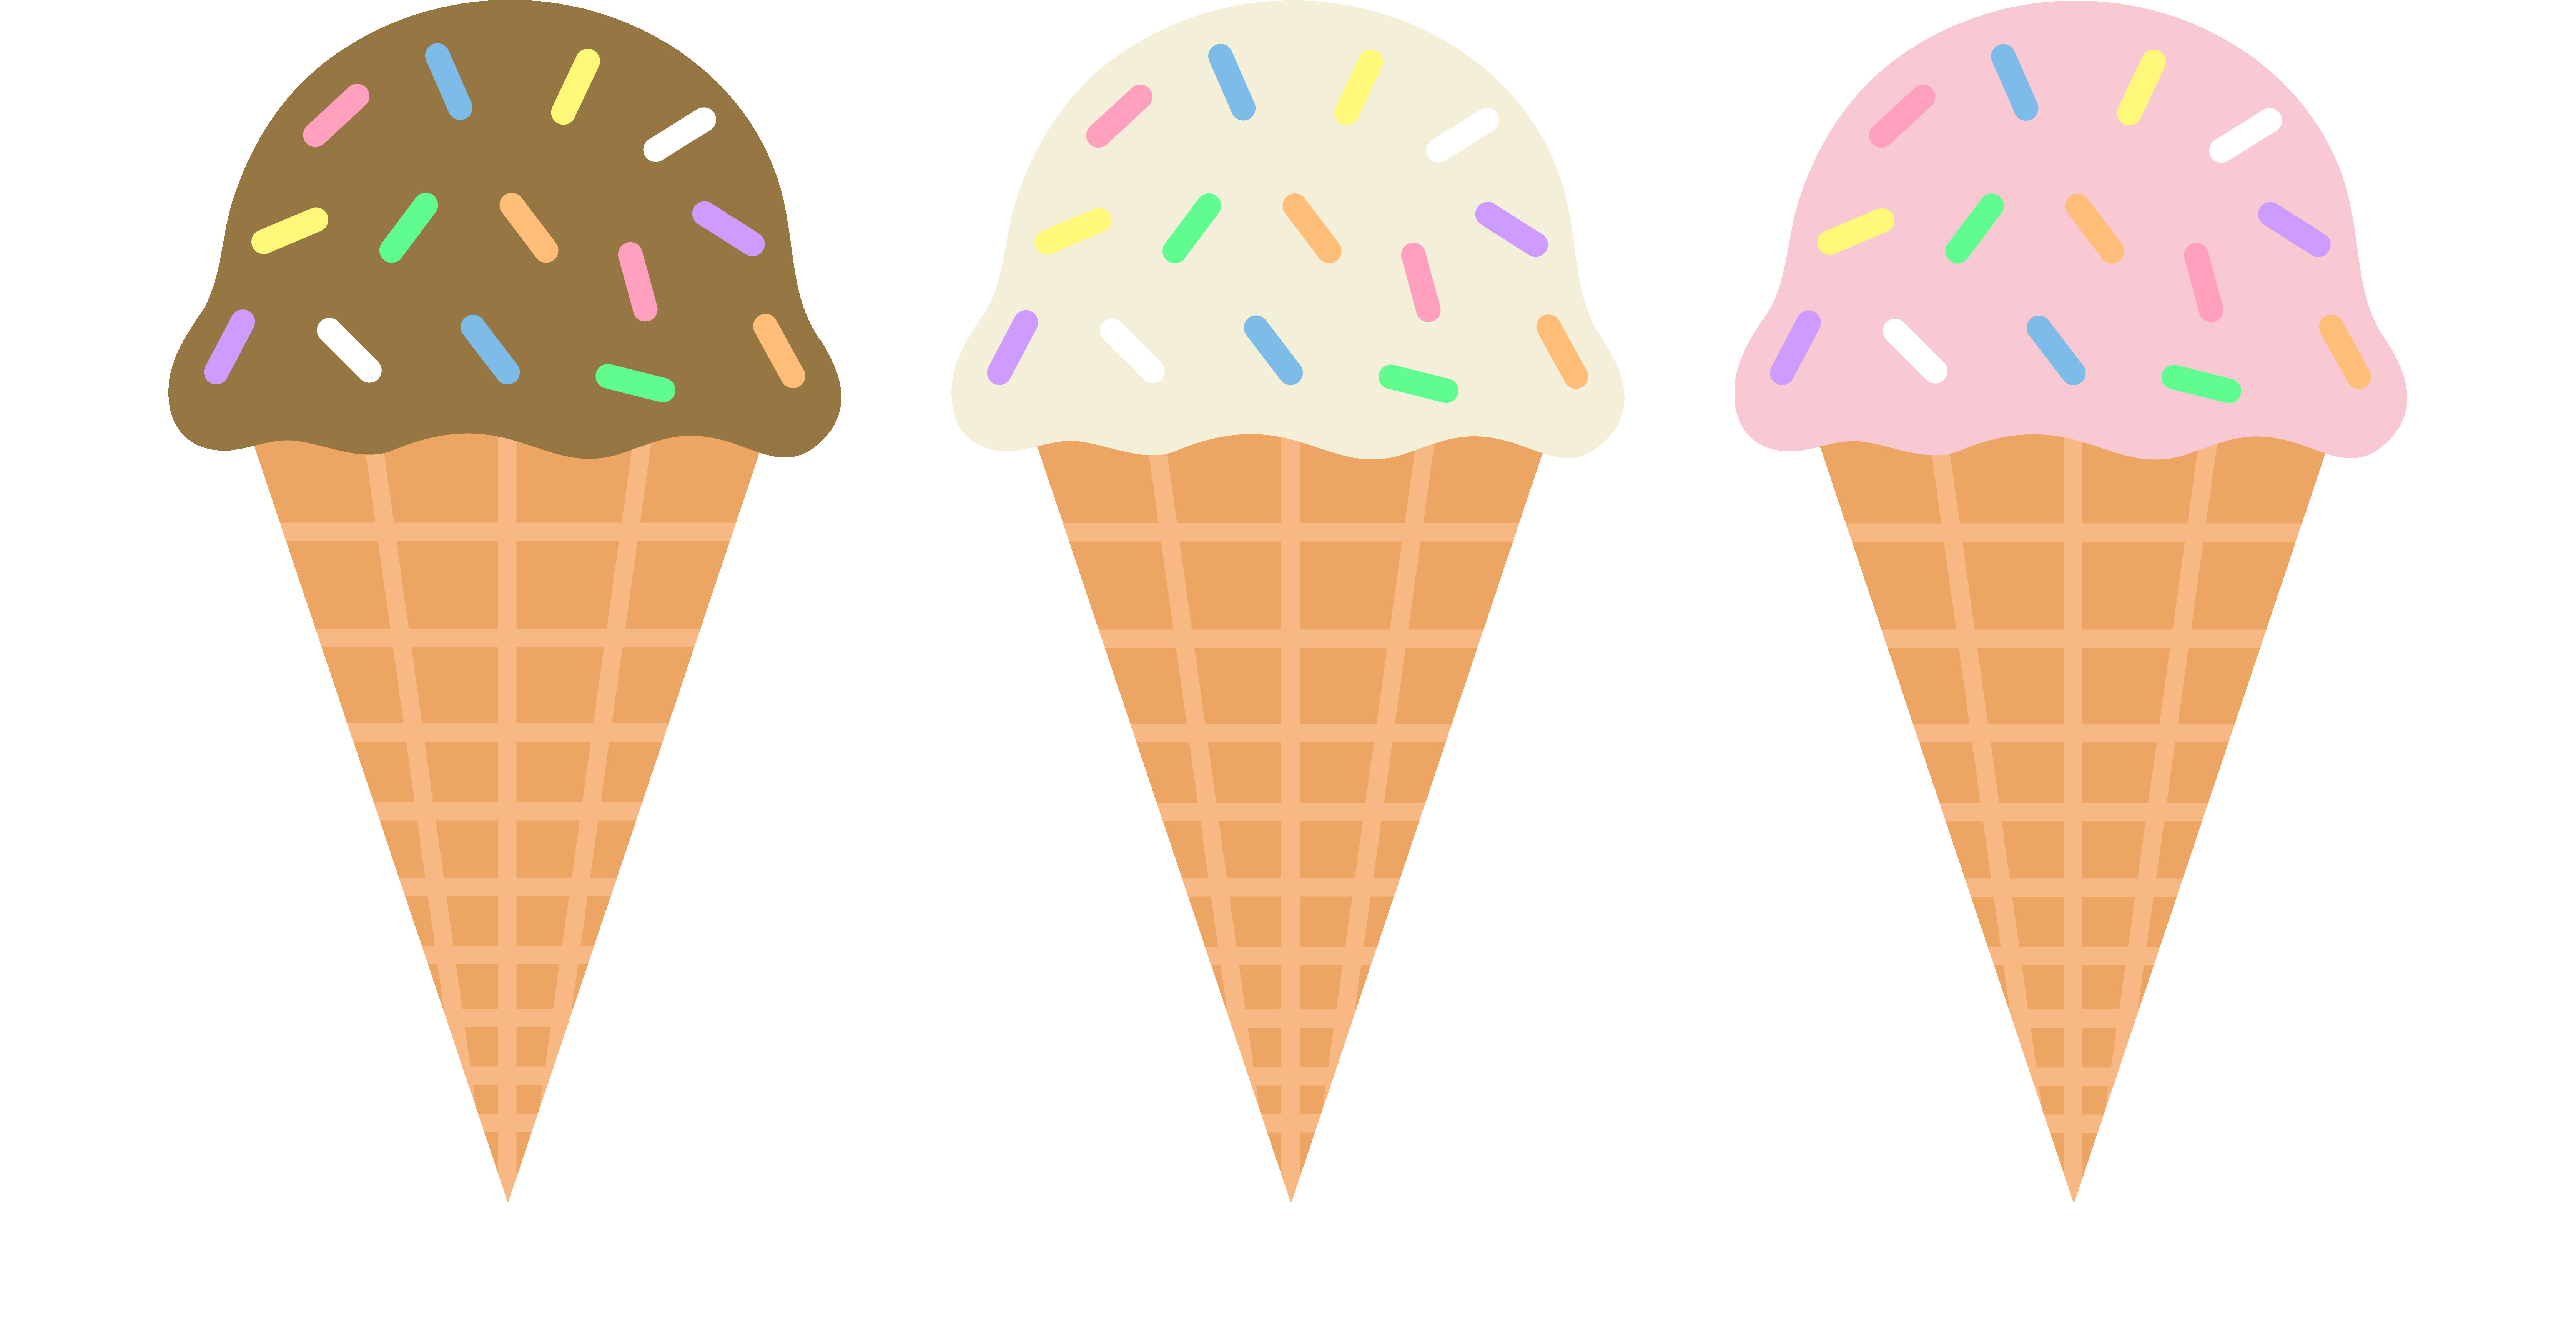 6701x3426 Clip Art Of Neapolitan Ice Cream Cone With Sprinkles And A Cherry